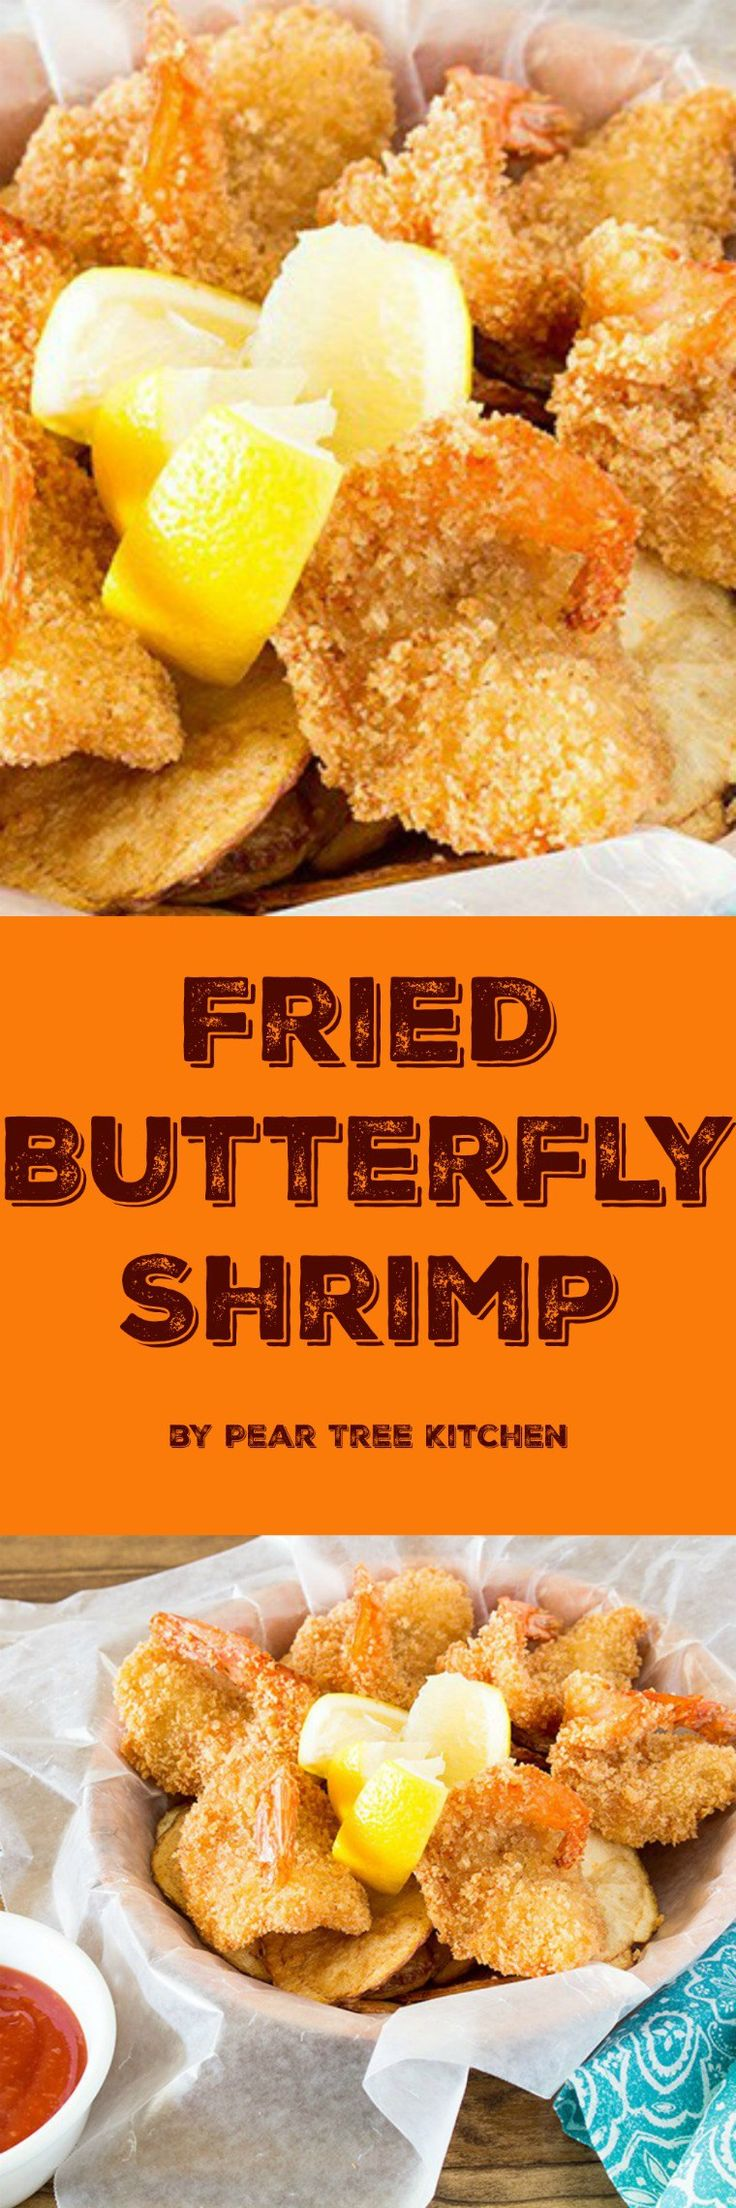 Crunchy, Golden Brown Butterfly Shrimp is easy to make at home. Tastier than fast food or frozen.